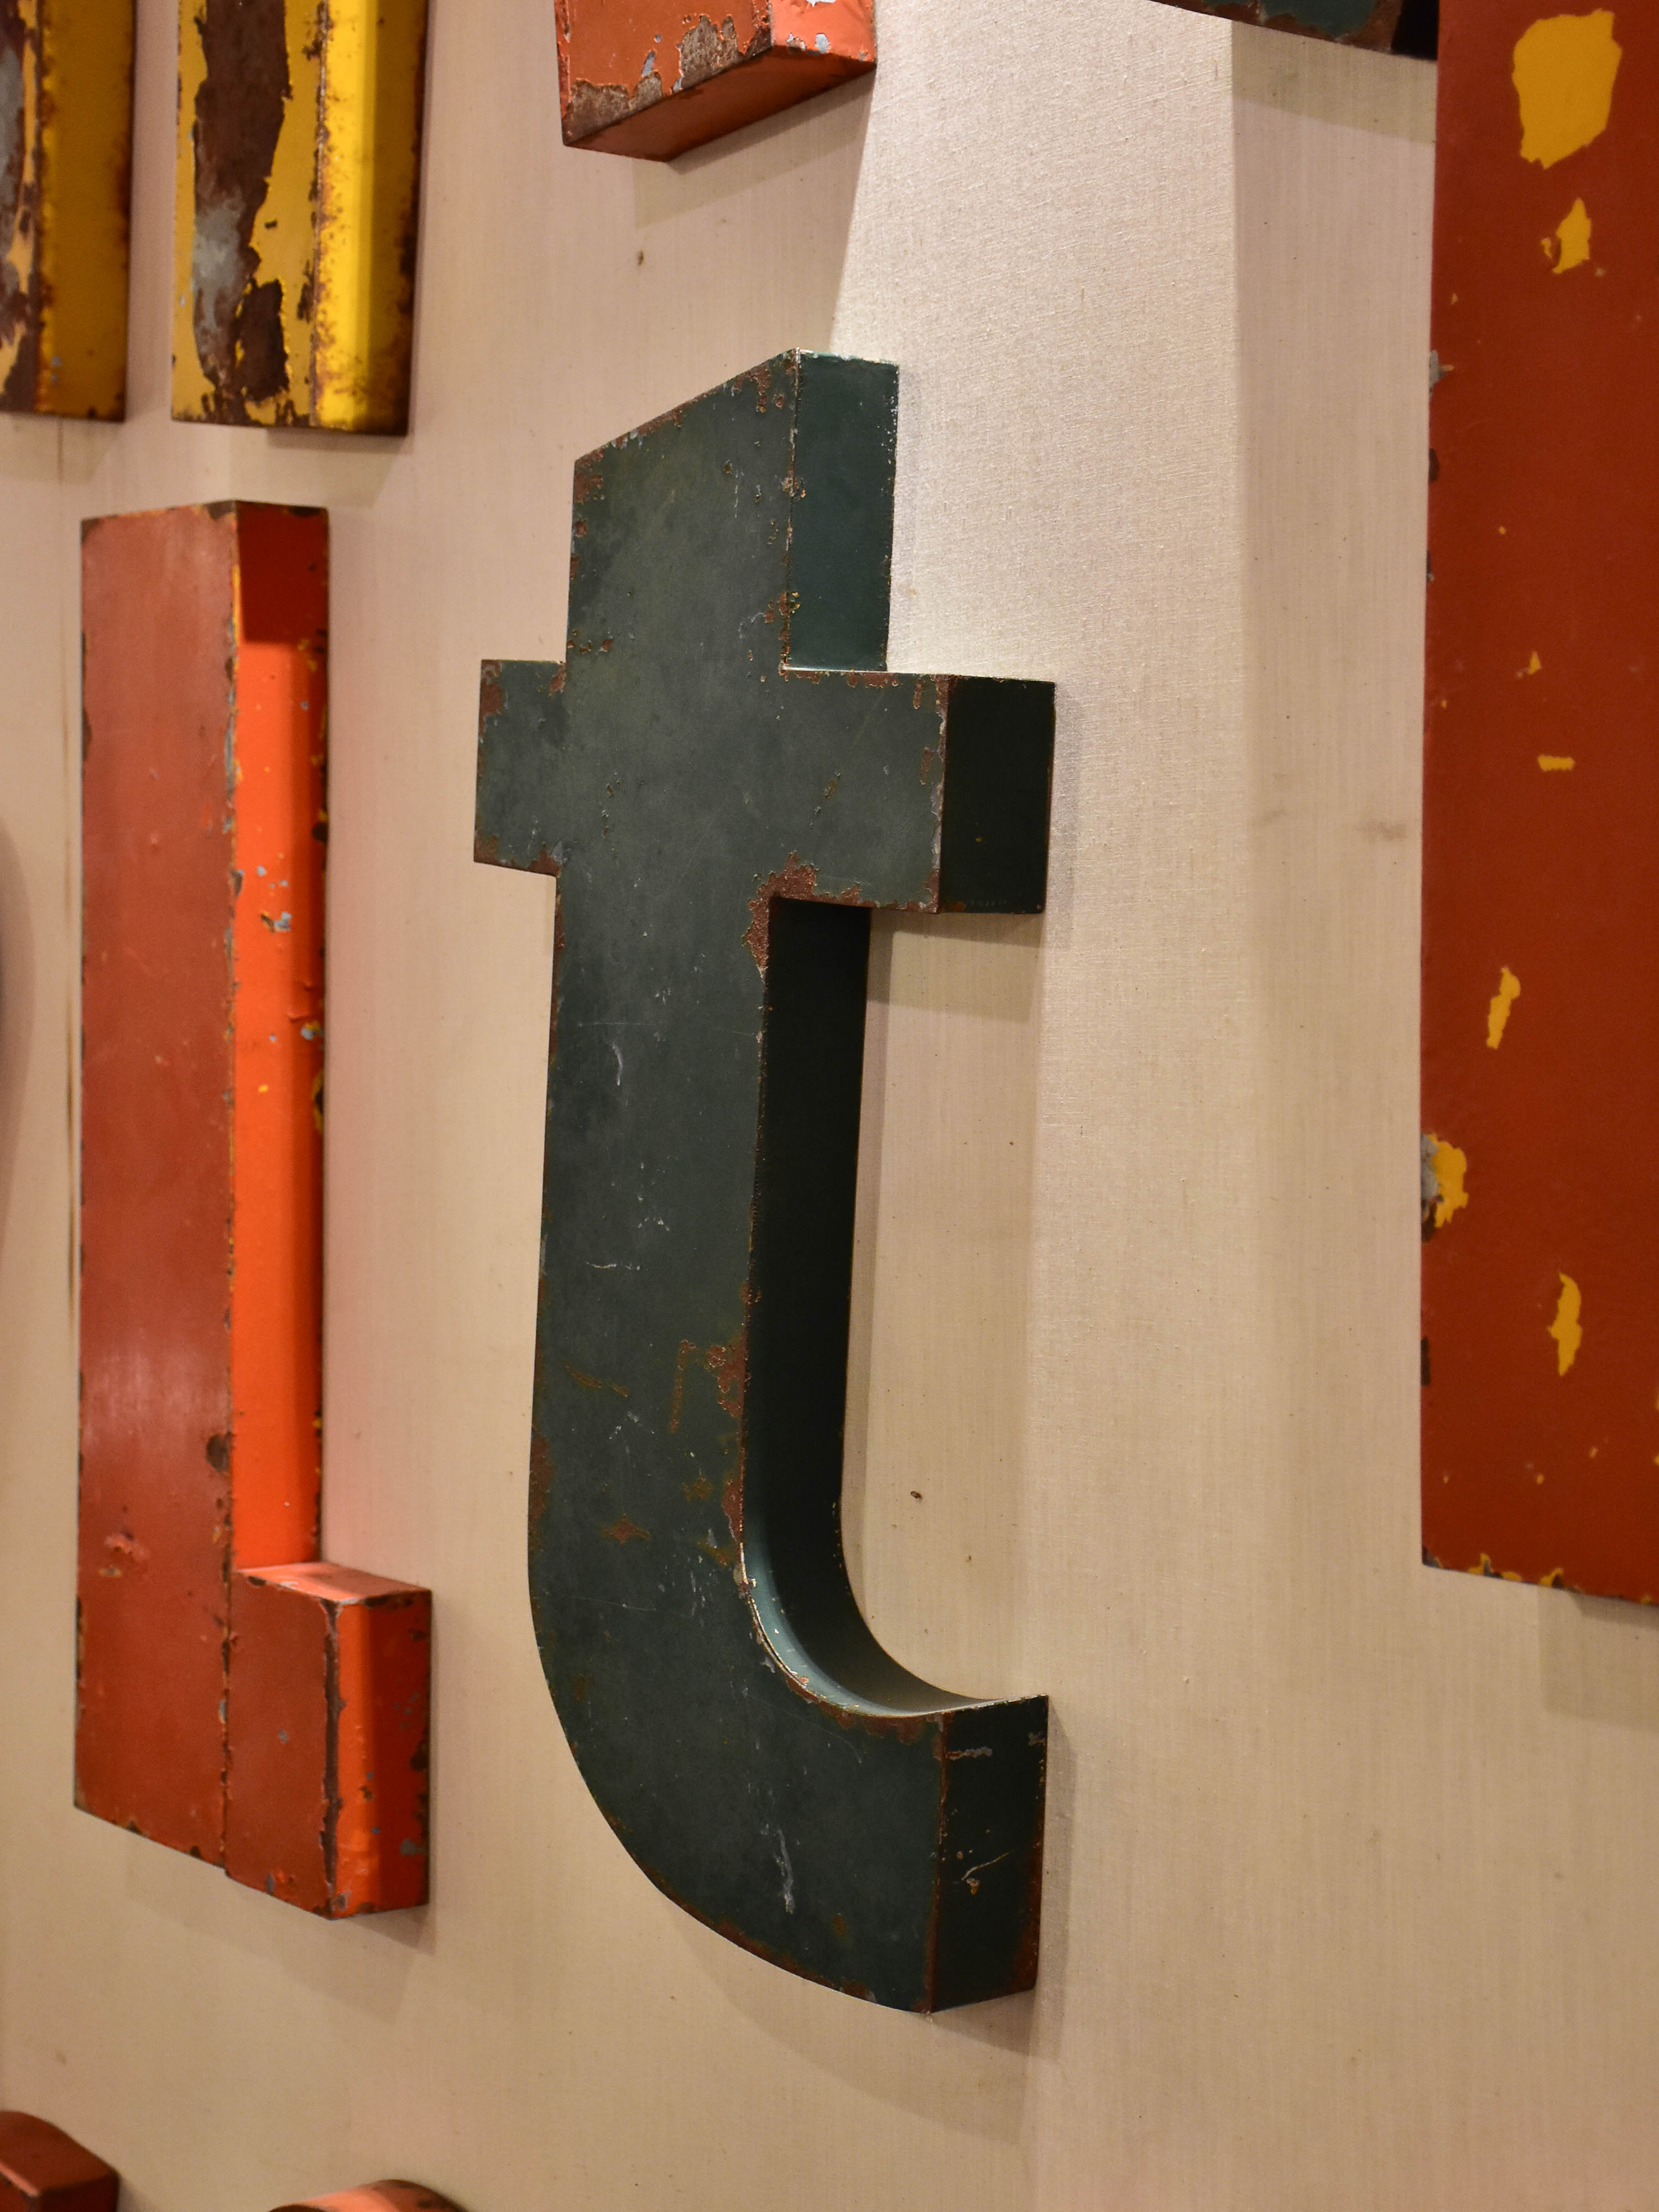 Collection of 5 French vintage letters - vintage signs